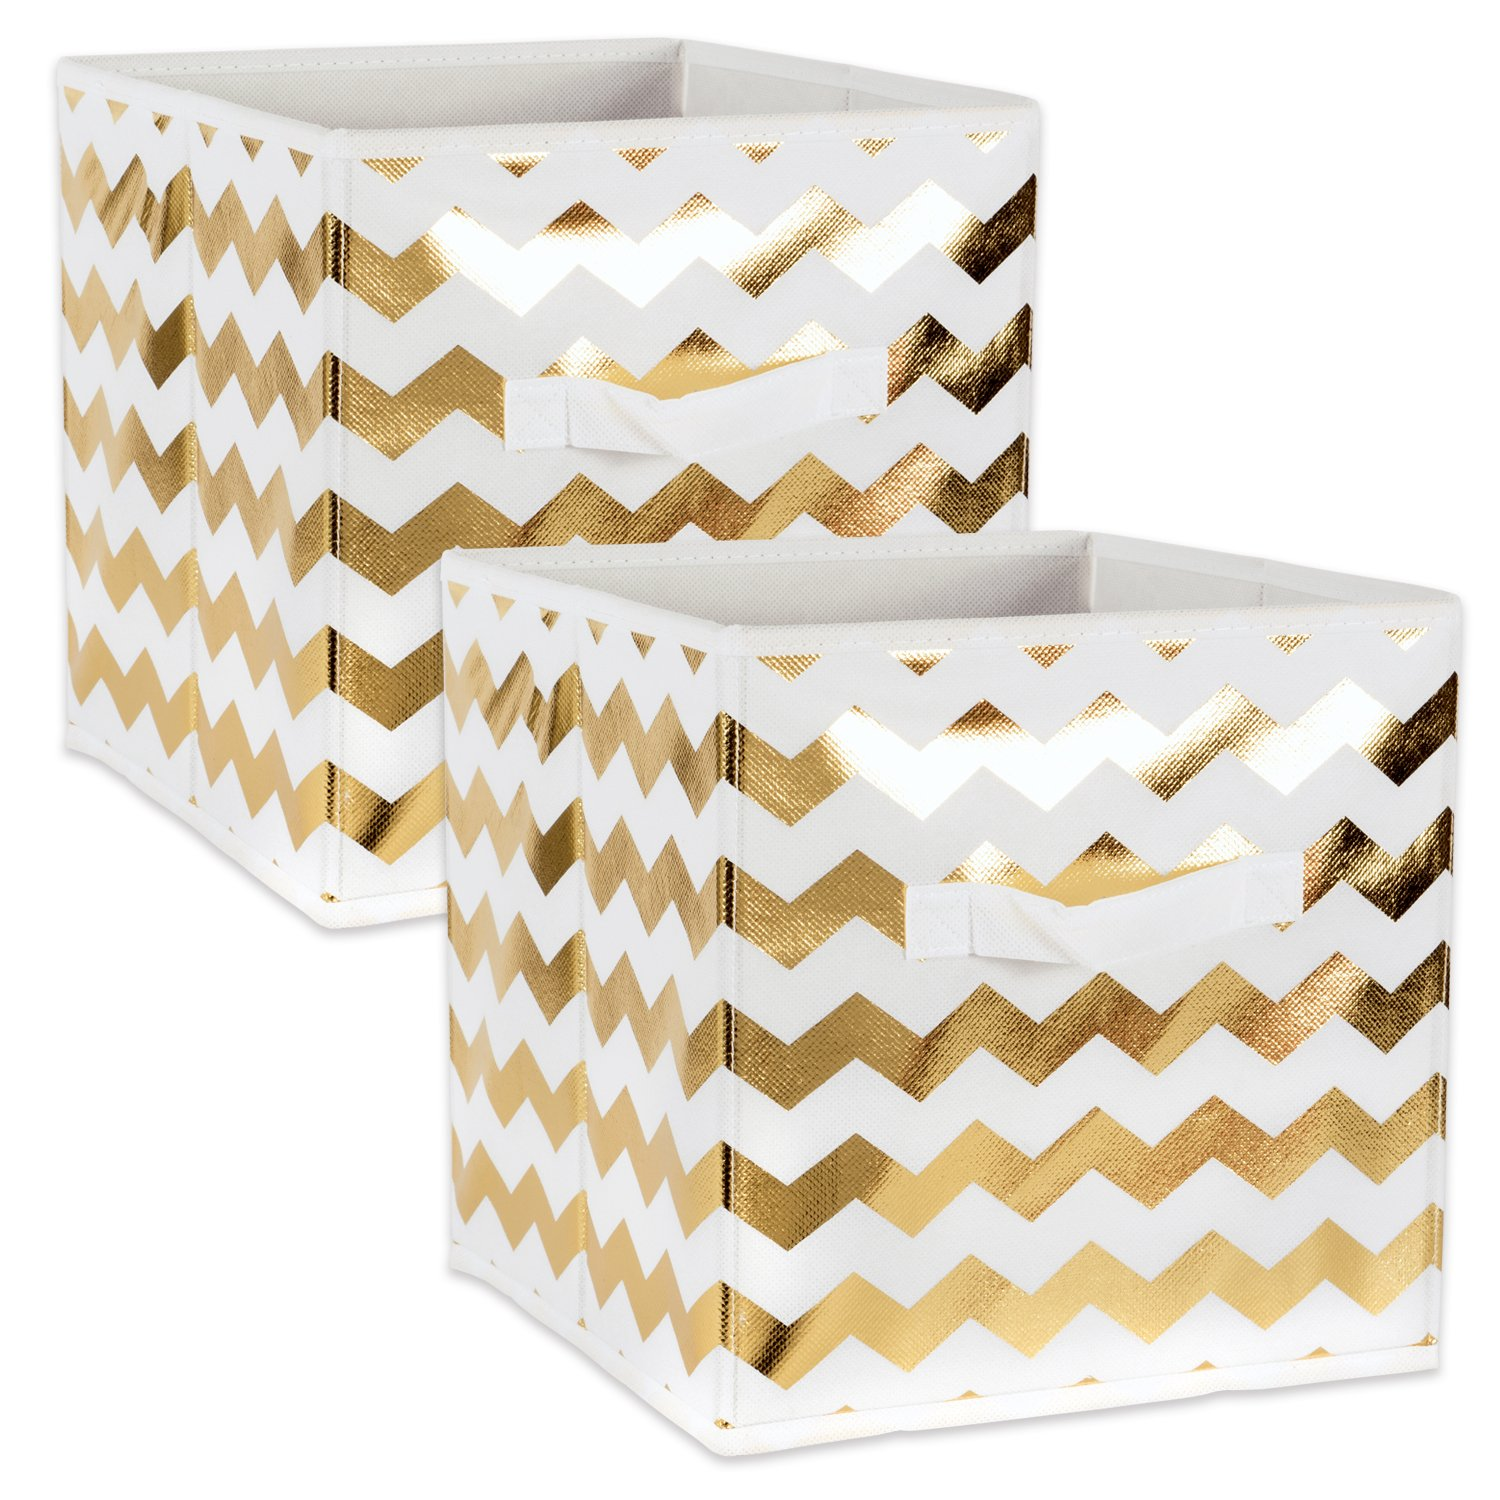 DII Fabric Storage Bins for Nursery, Offices, Home Organization, Containers Are Made To Fit Standard Cube Organizers (11x11x11) Chevron Gold - Set of 2